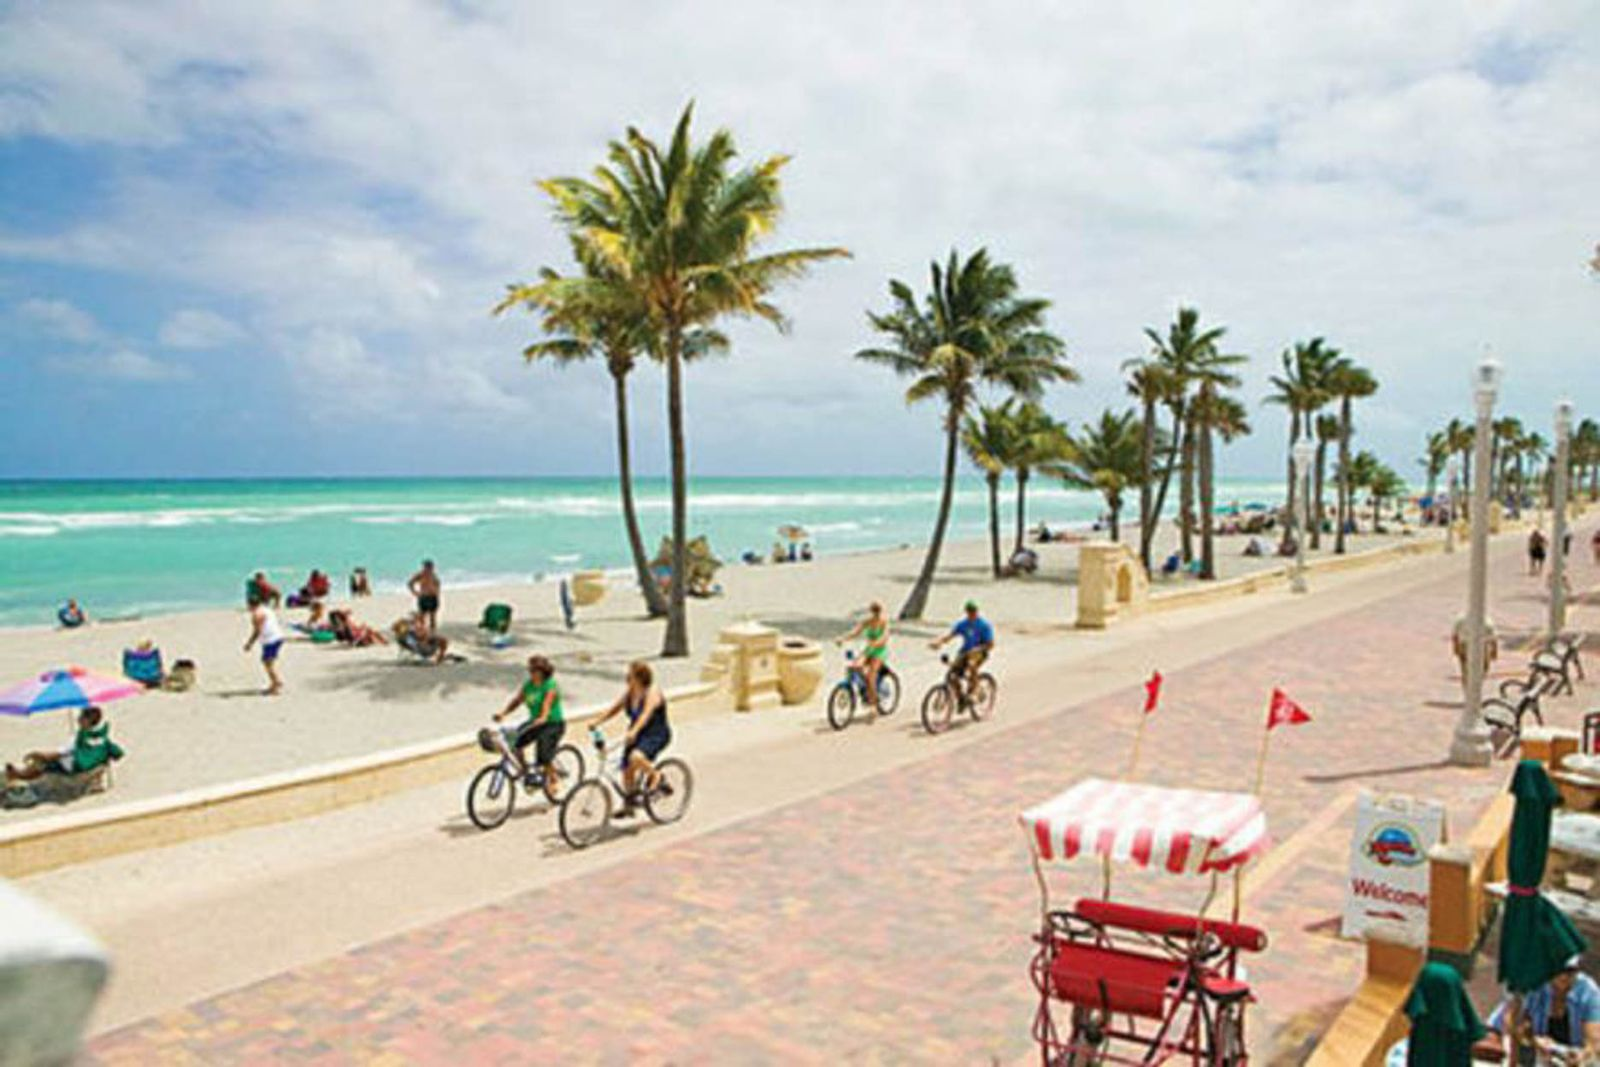 Hollywood Beach boardwalk - if charged with a crime, get a hollywood criminal defense attorney